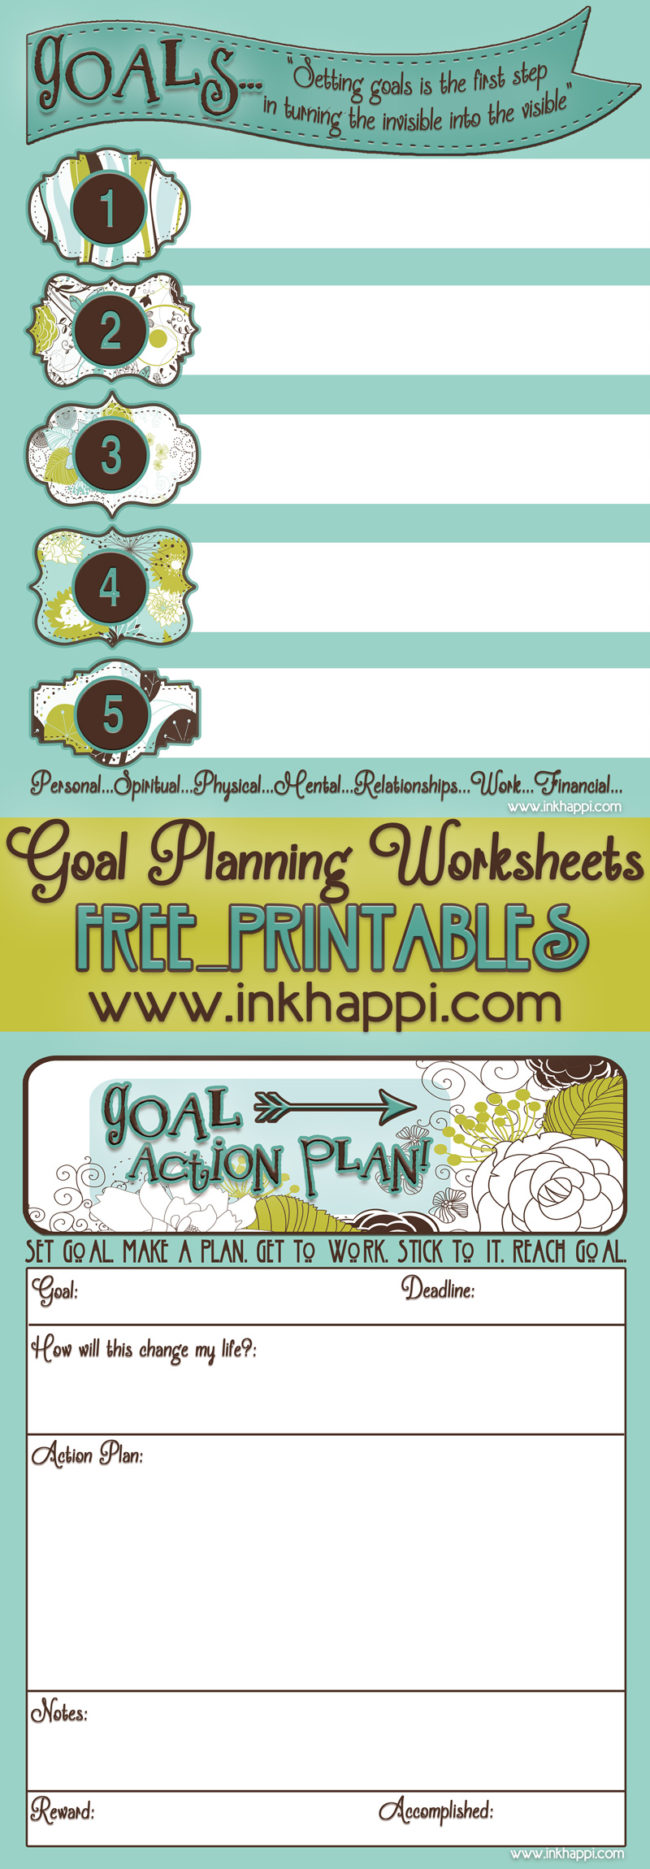 Goal Planning Worksheets free printables. Planning is a must to achieve success! #freeprintable #goals #planning